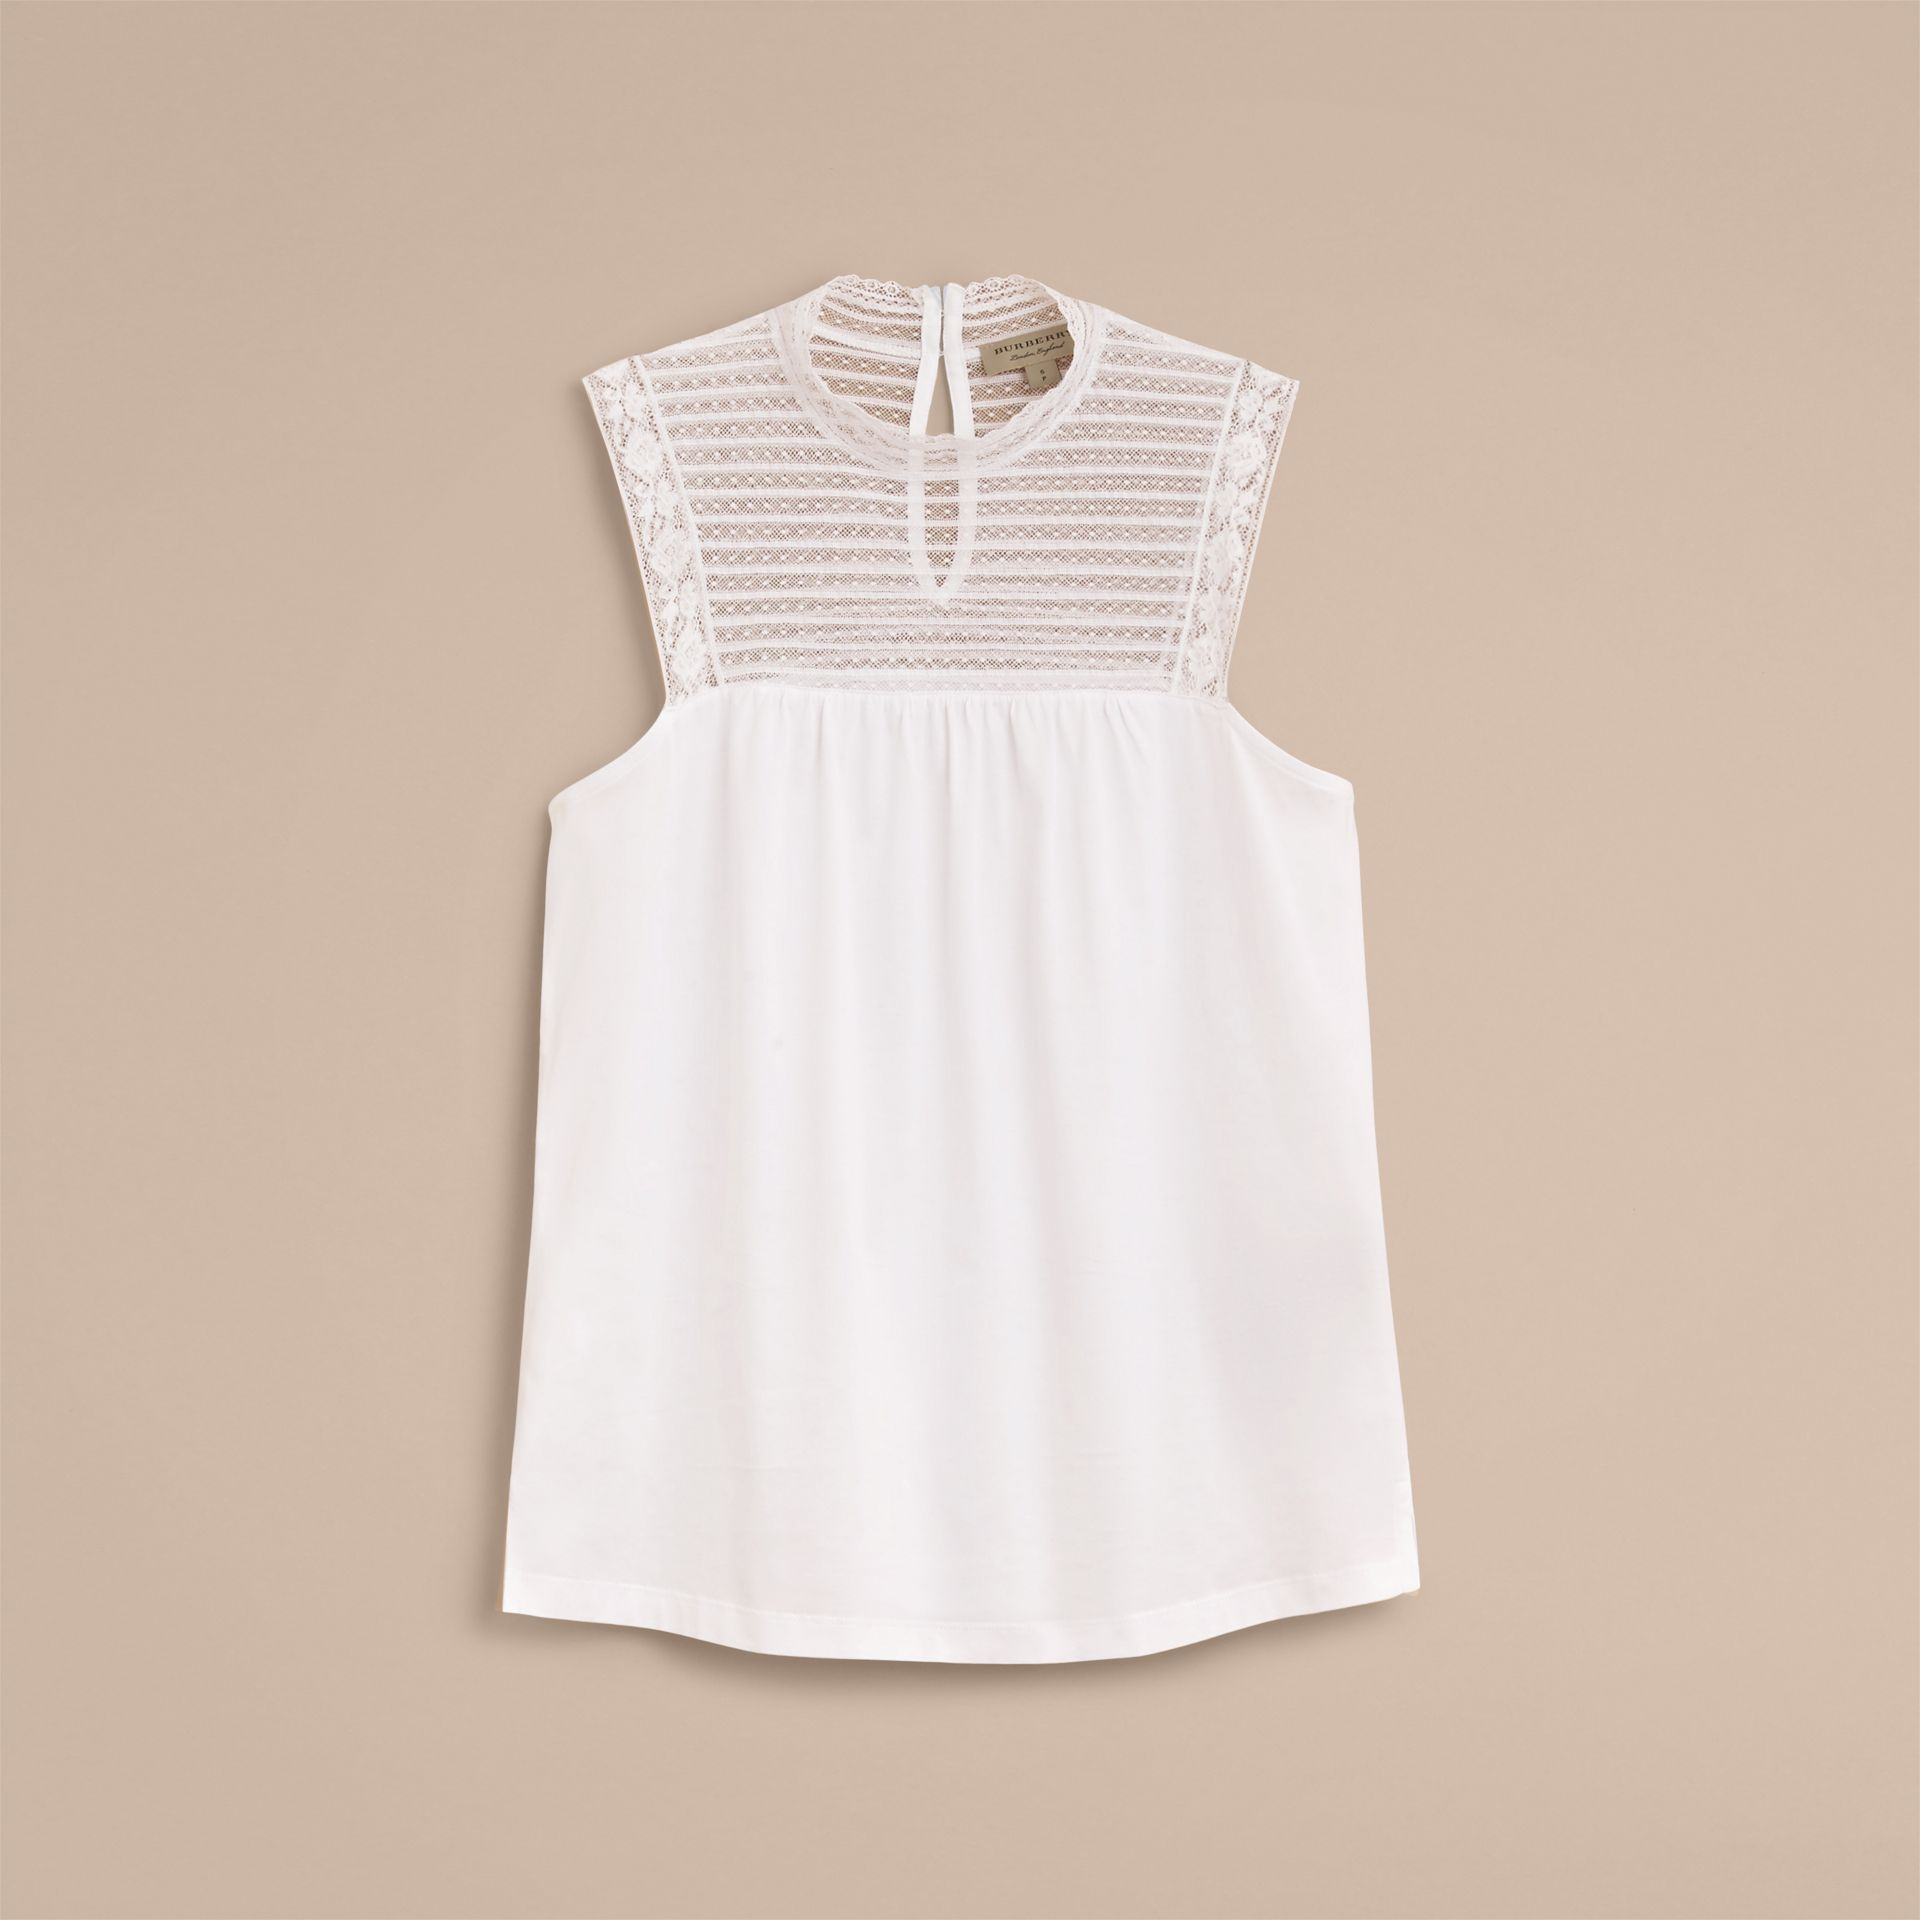 Sleeveless Lace Panel Cotton Top in White - Women | Burberry - gallery image 4